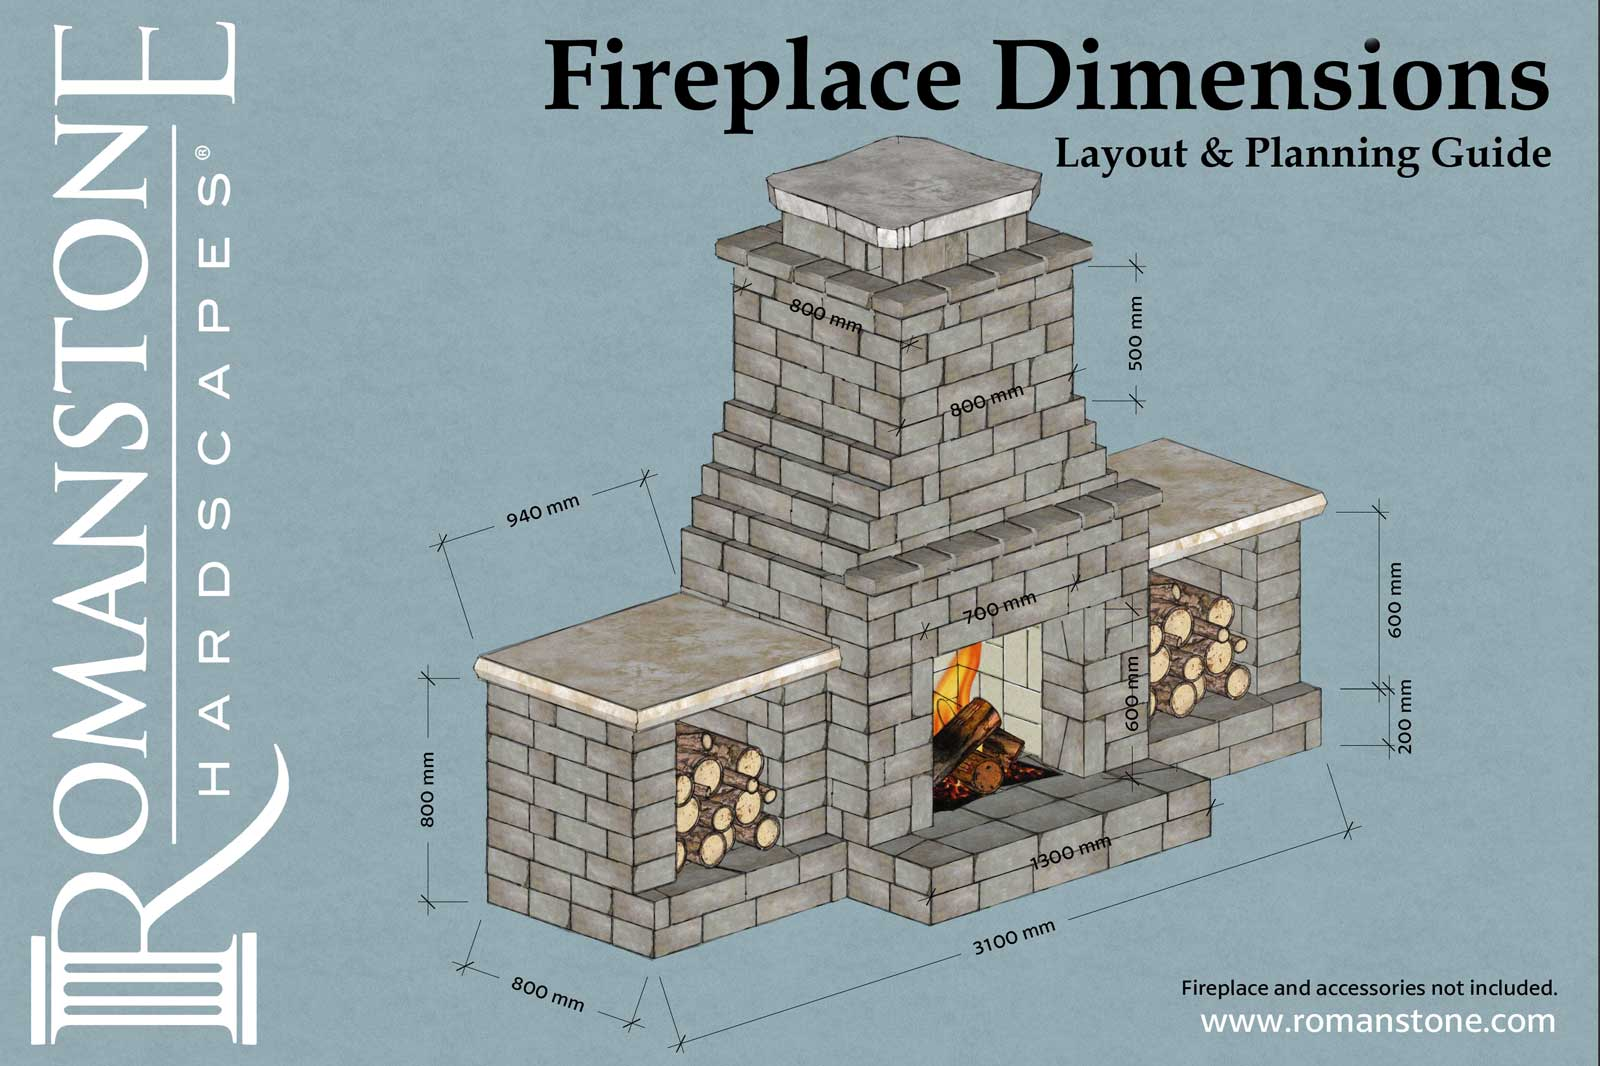 Planning guide with Dimensios